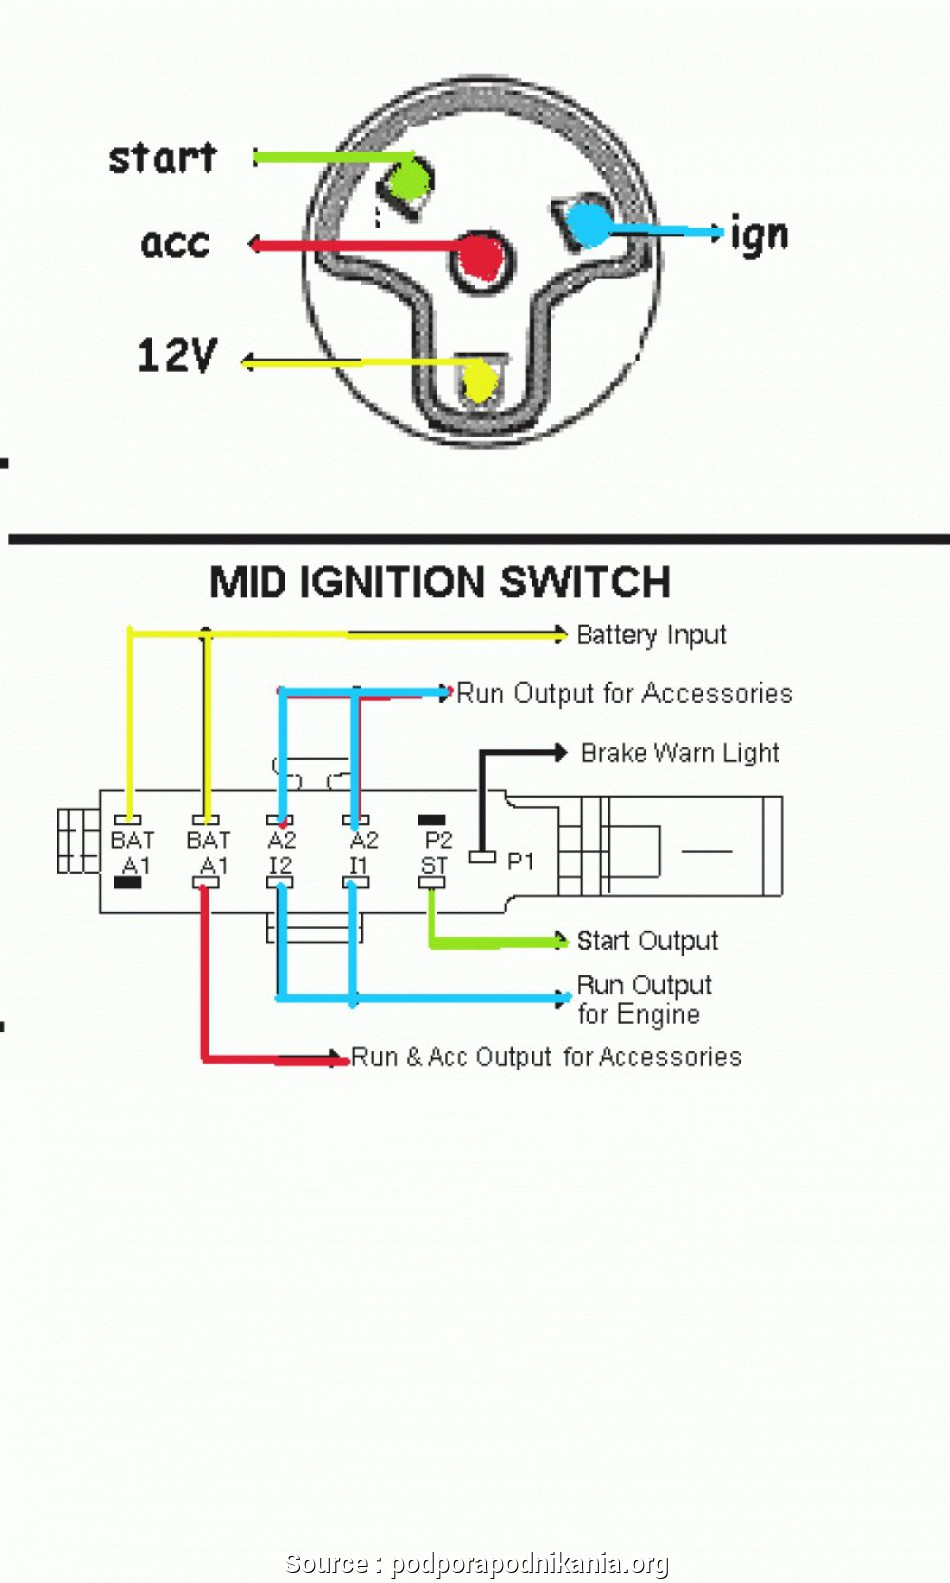 [SCHEMATICS_48ZD]  OY_2064] Ignition Switch Wiring Diagram From 6 Wire To 4 Wire Download  Diagram | Wiring Diagram Schematic With Switch |  | Phot Oliti Pap Mohammedshrine Librar Wiring 101